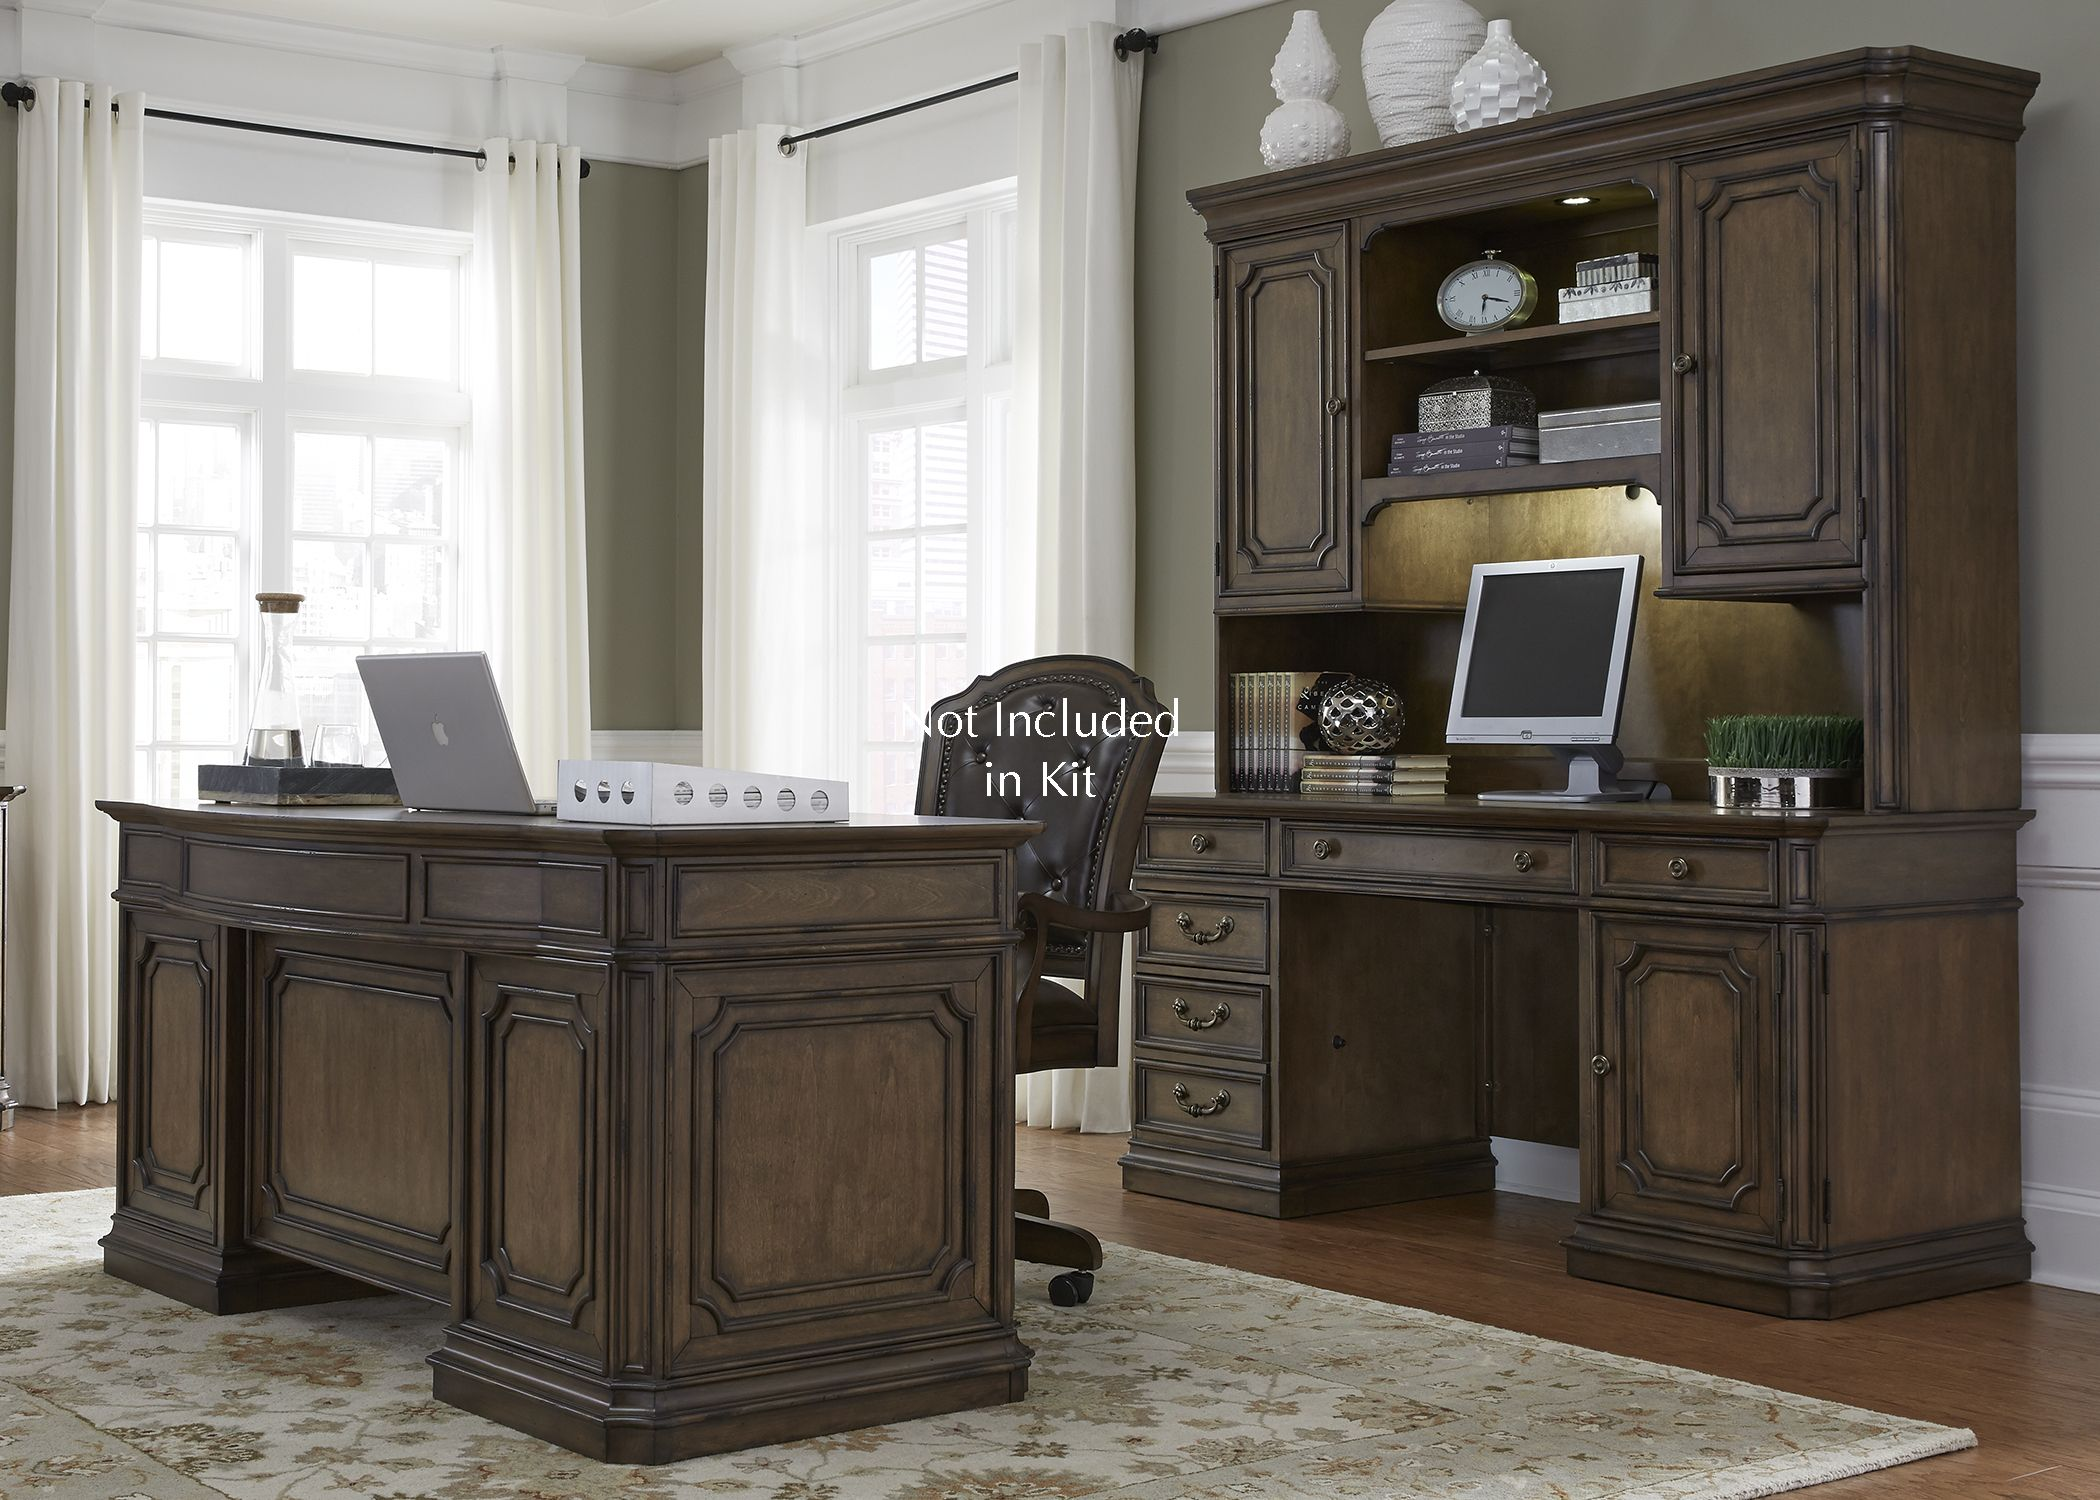 Amelia Antique Toffee Jr Executive Home Office SetMedia Image